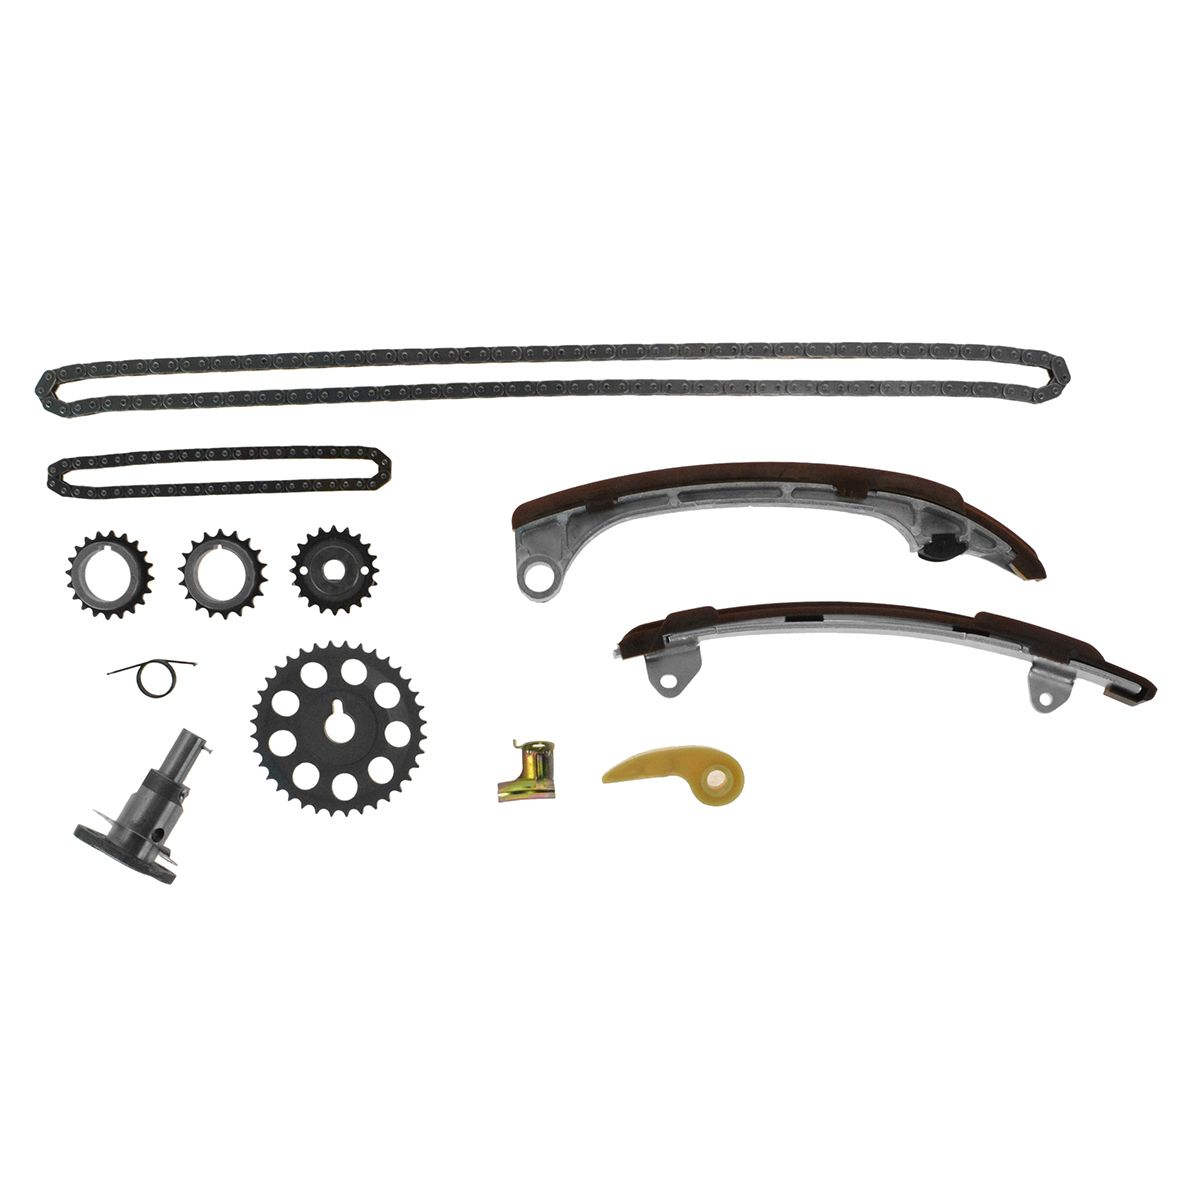 Timing Amp Oil Pump Chain Kit For Camry Corolla Highlander